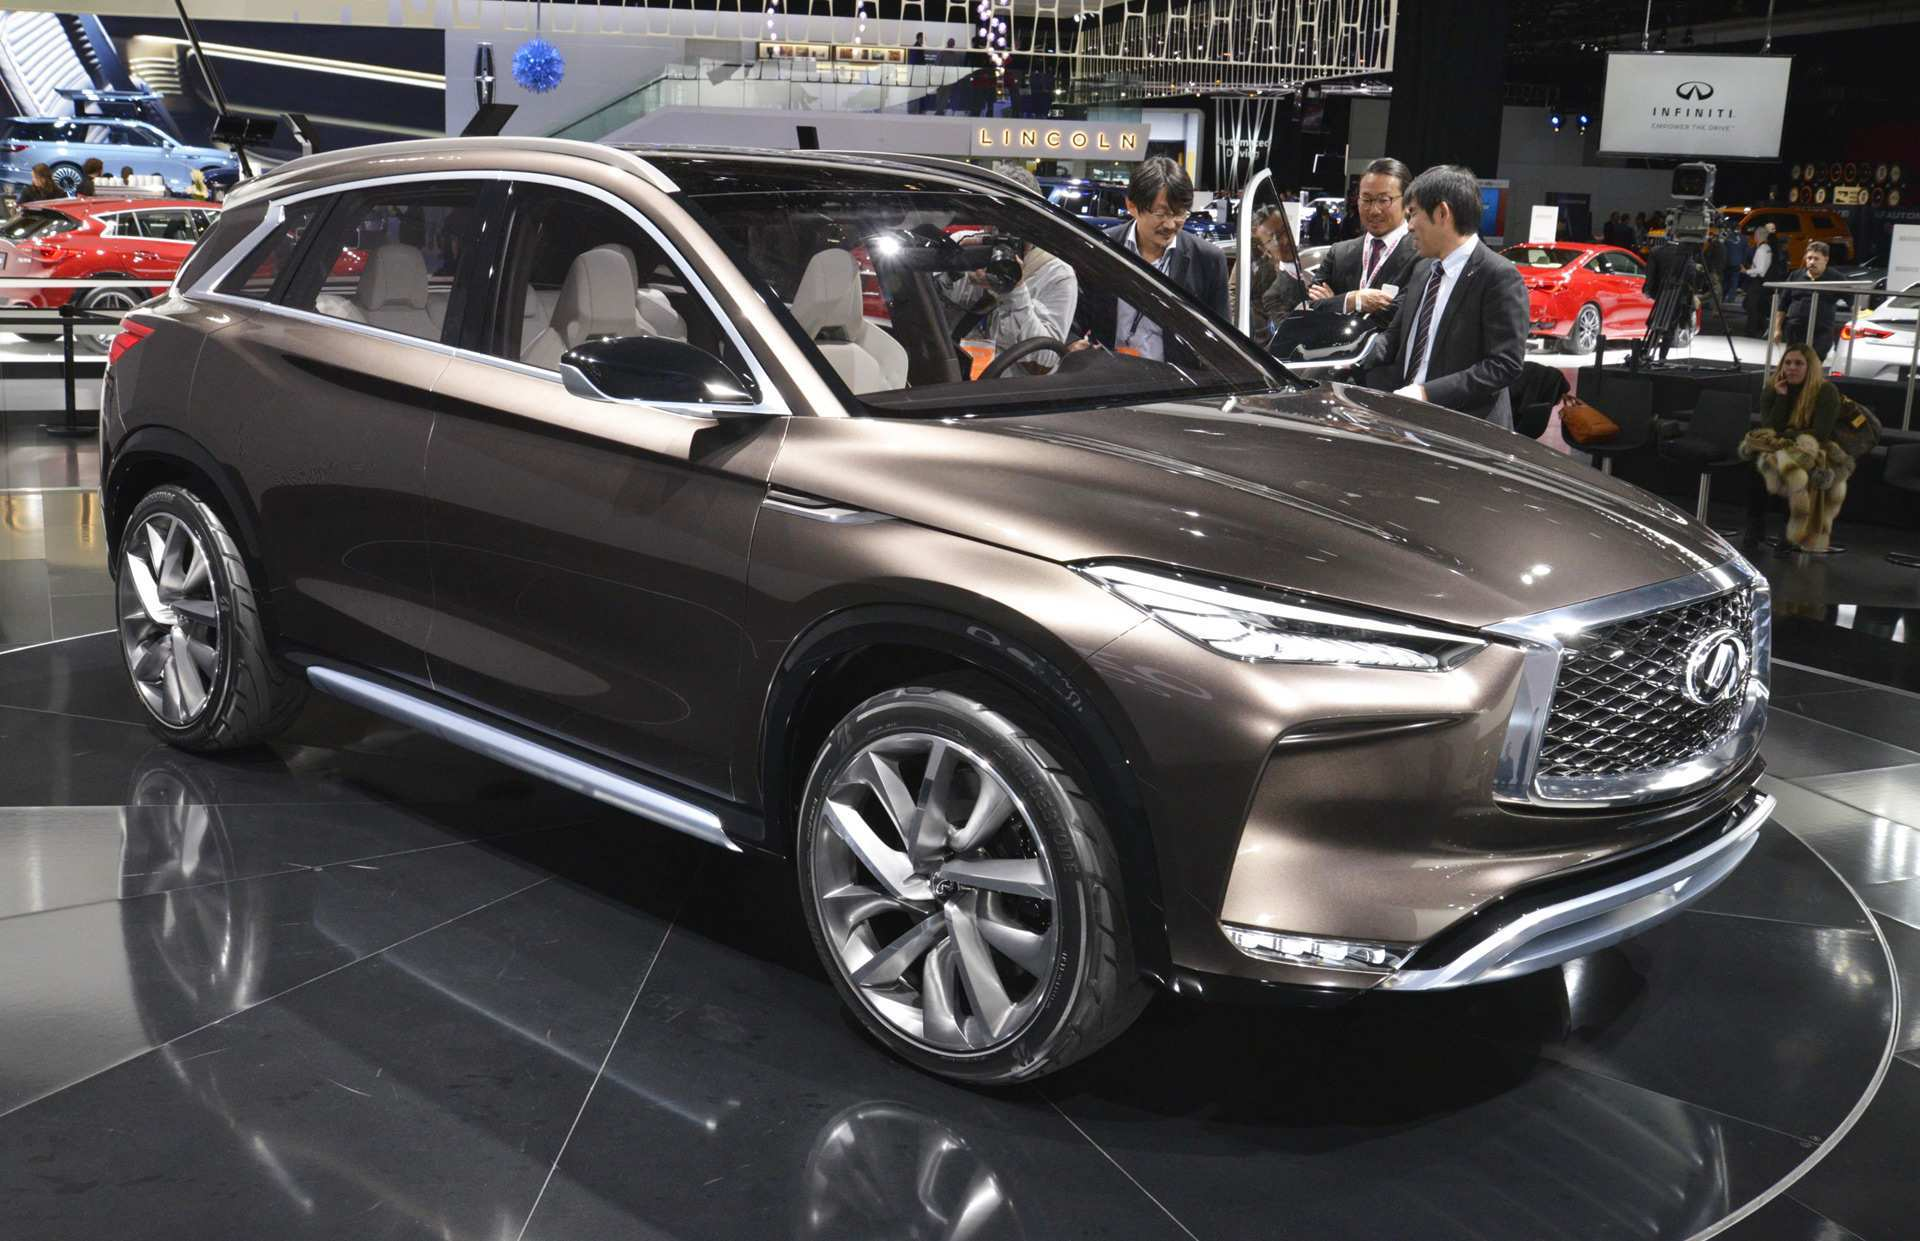 85 Best Review The Infiniti Qx50 2019 Hybrid Concept Performance and New Engine with The Infiniti Qx50 2019 Hybrid Concept